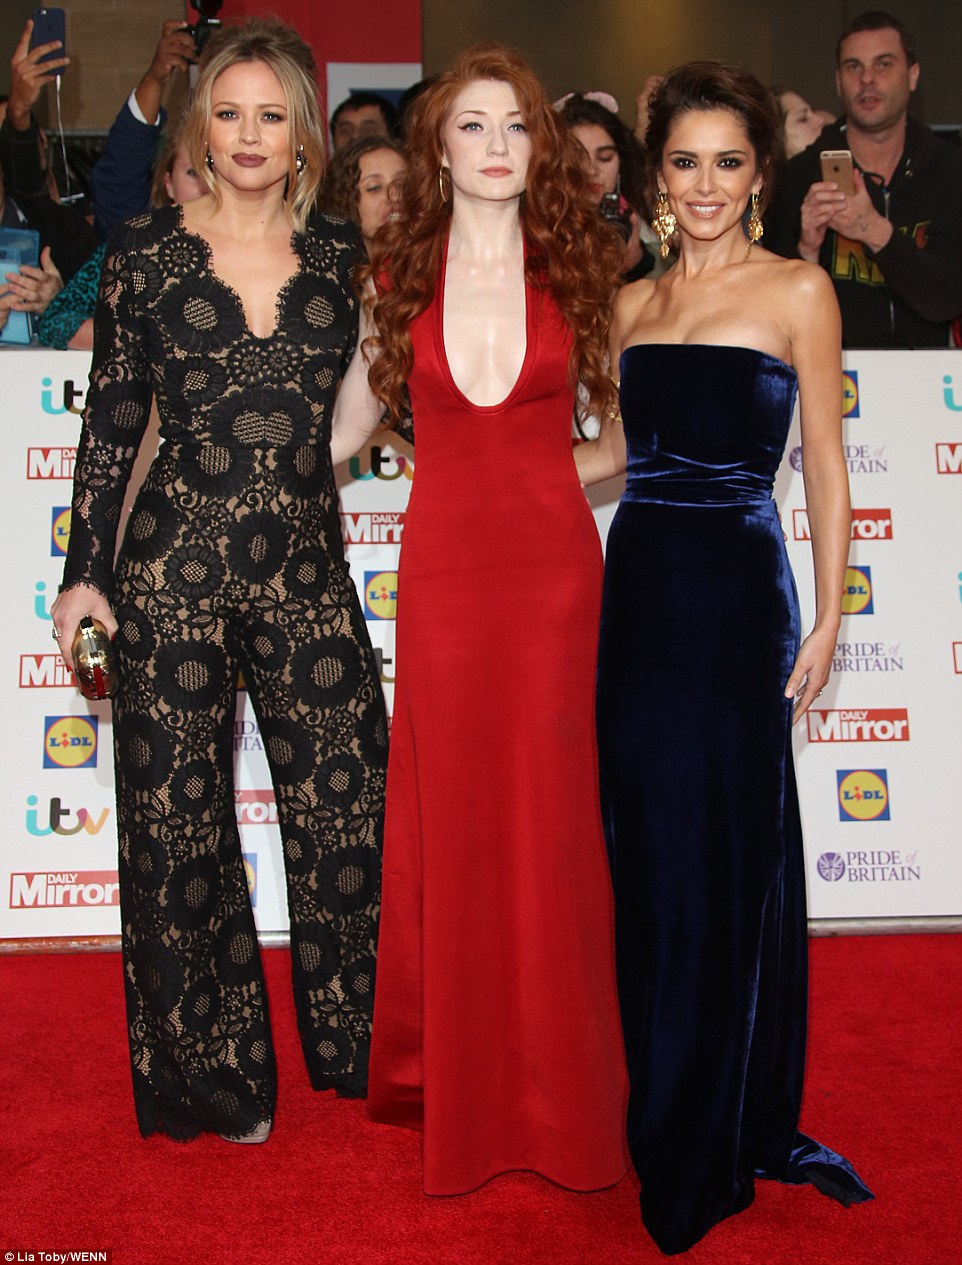 A mini Girls Aloud reunion! Cheryl Fernandez-Versini, Kimberley Walsh and Nicola Robertsmanaged to steal the limelight as they arrived at London's lavish Grosvenor House Hotel for this year's Pride of Britain Awards on Monday evening